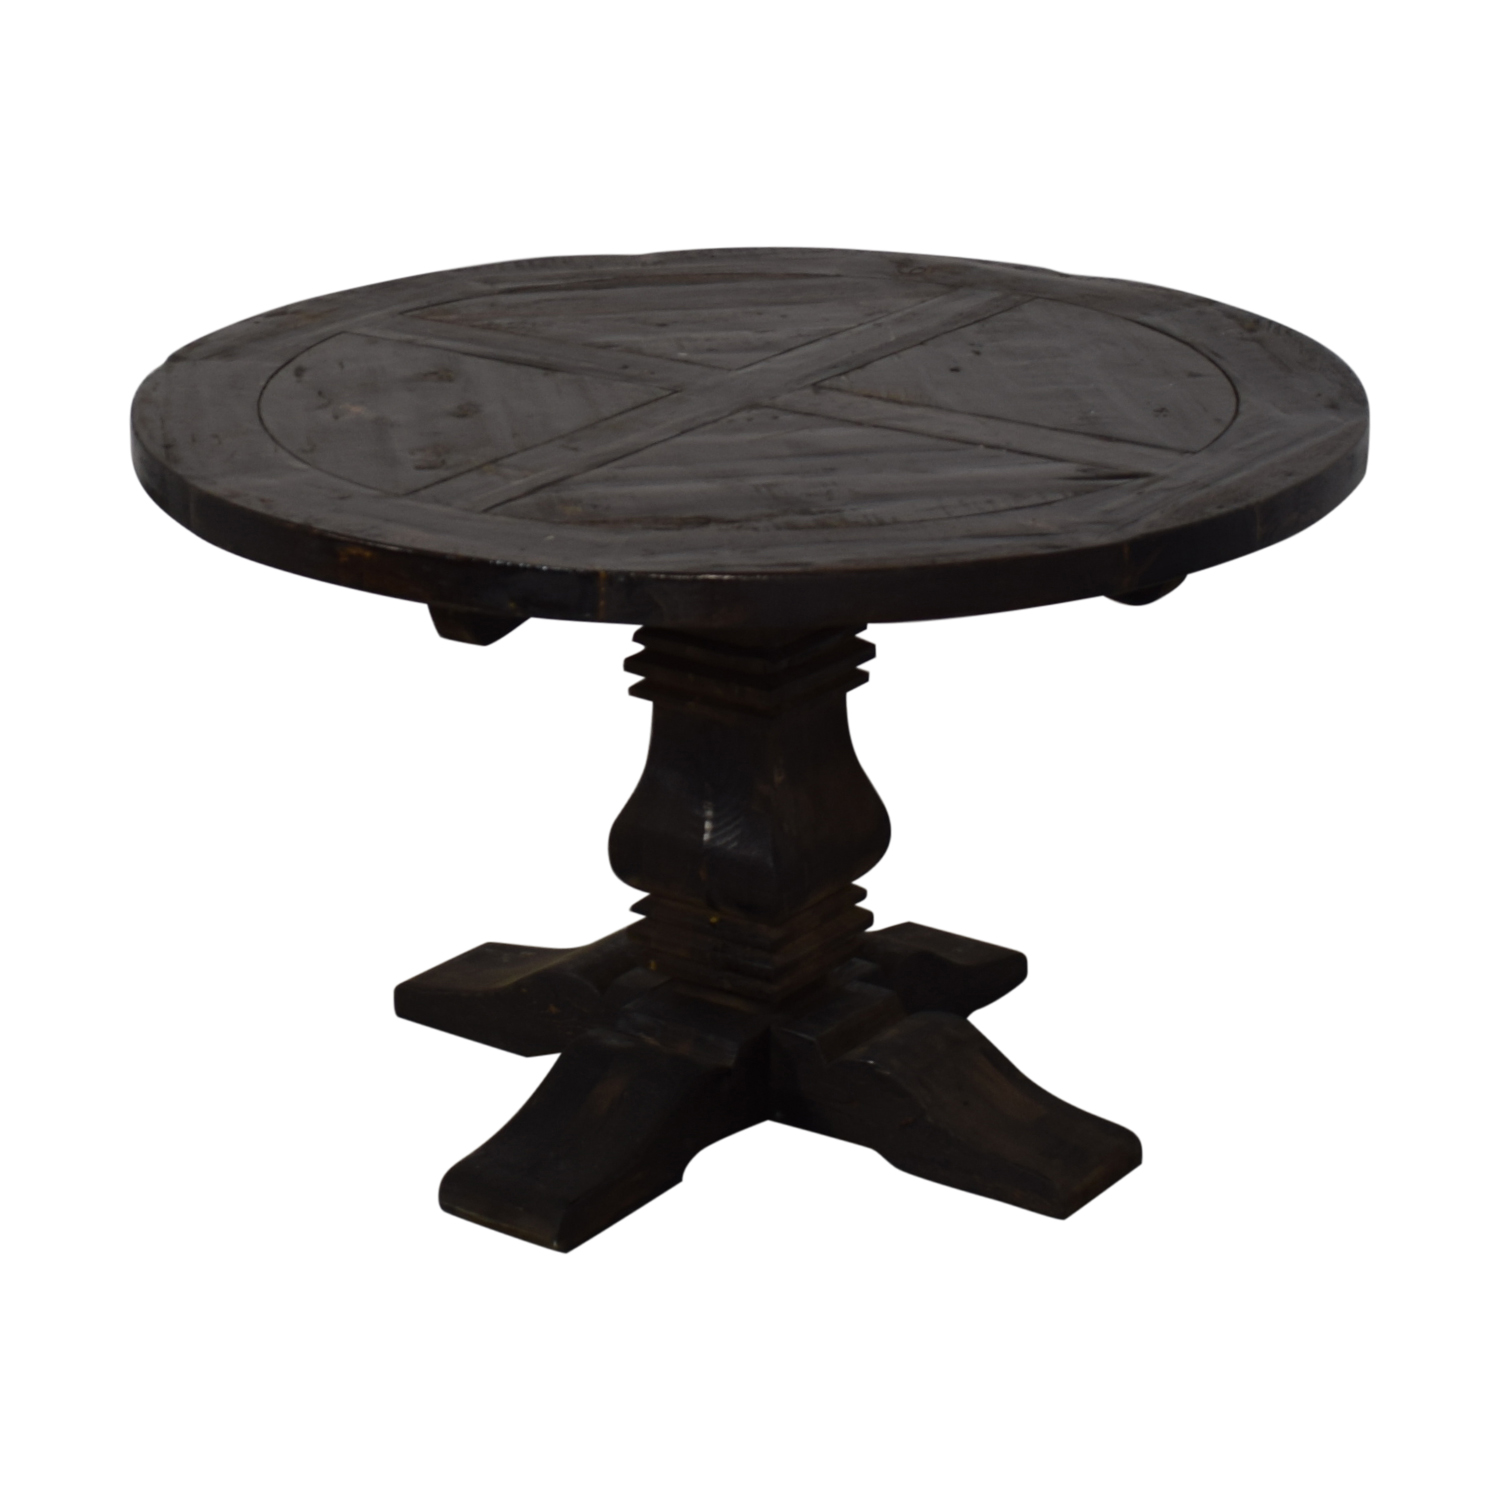 Restoration Hardware Restoration Hardware Round Salvaged Wood Distressed Trestle Table dimensions